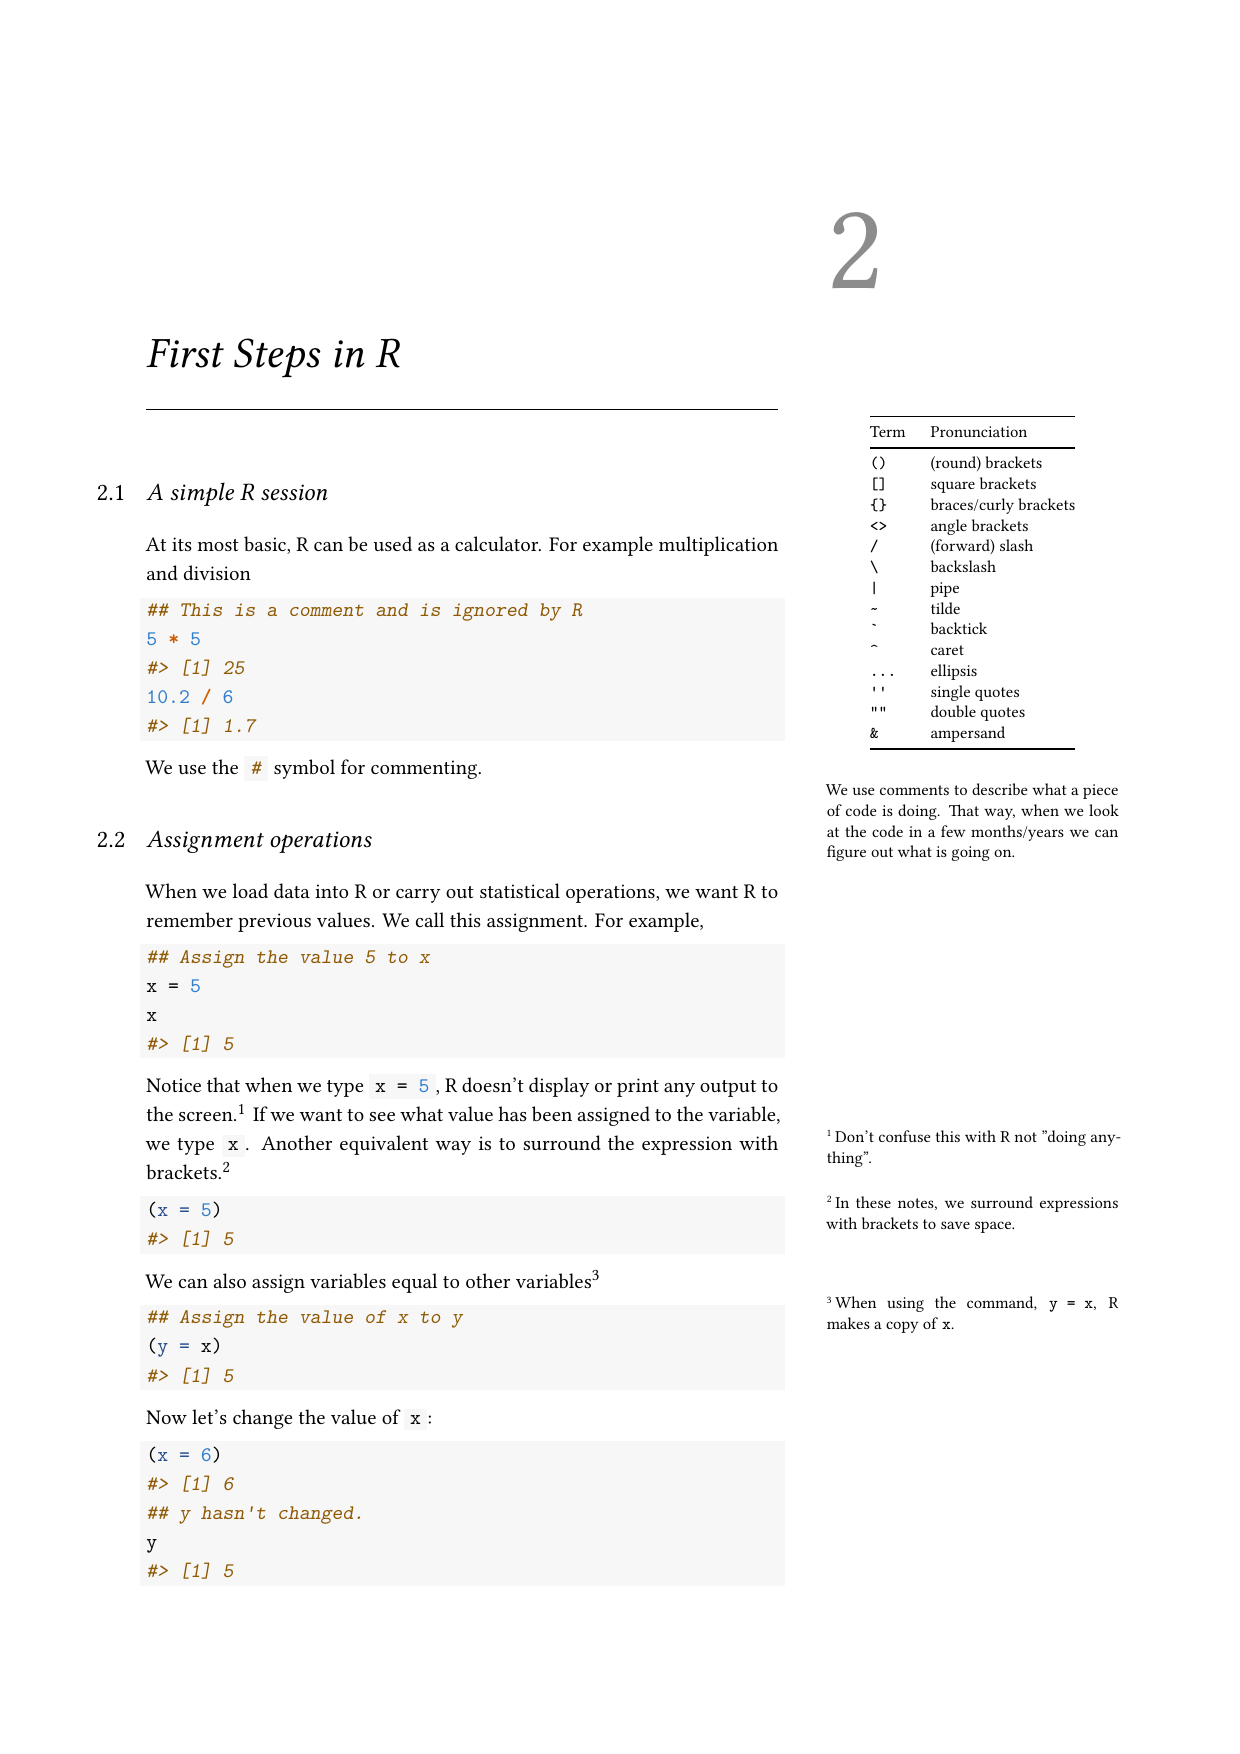 Example course material for 'Introduction to R